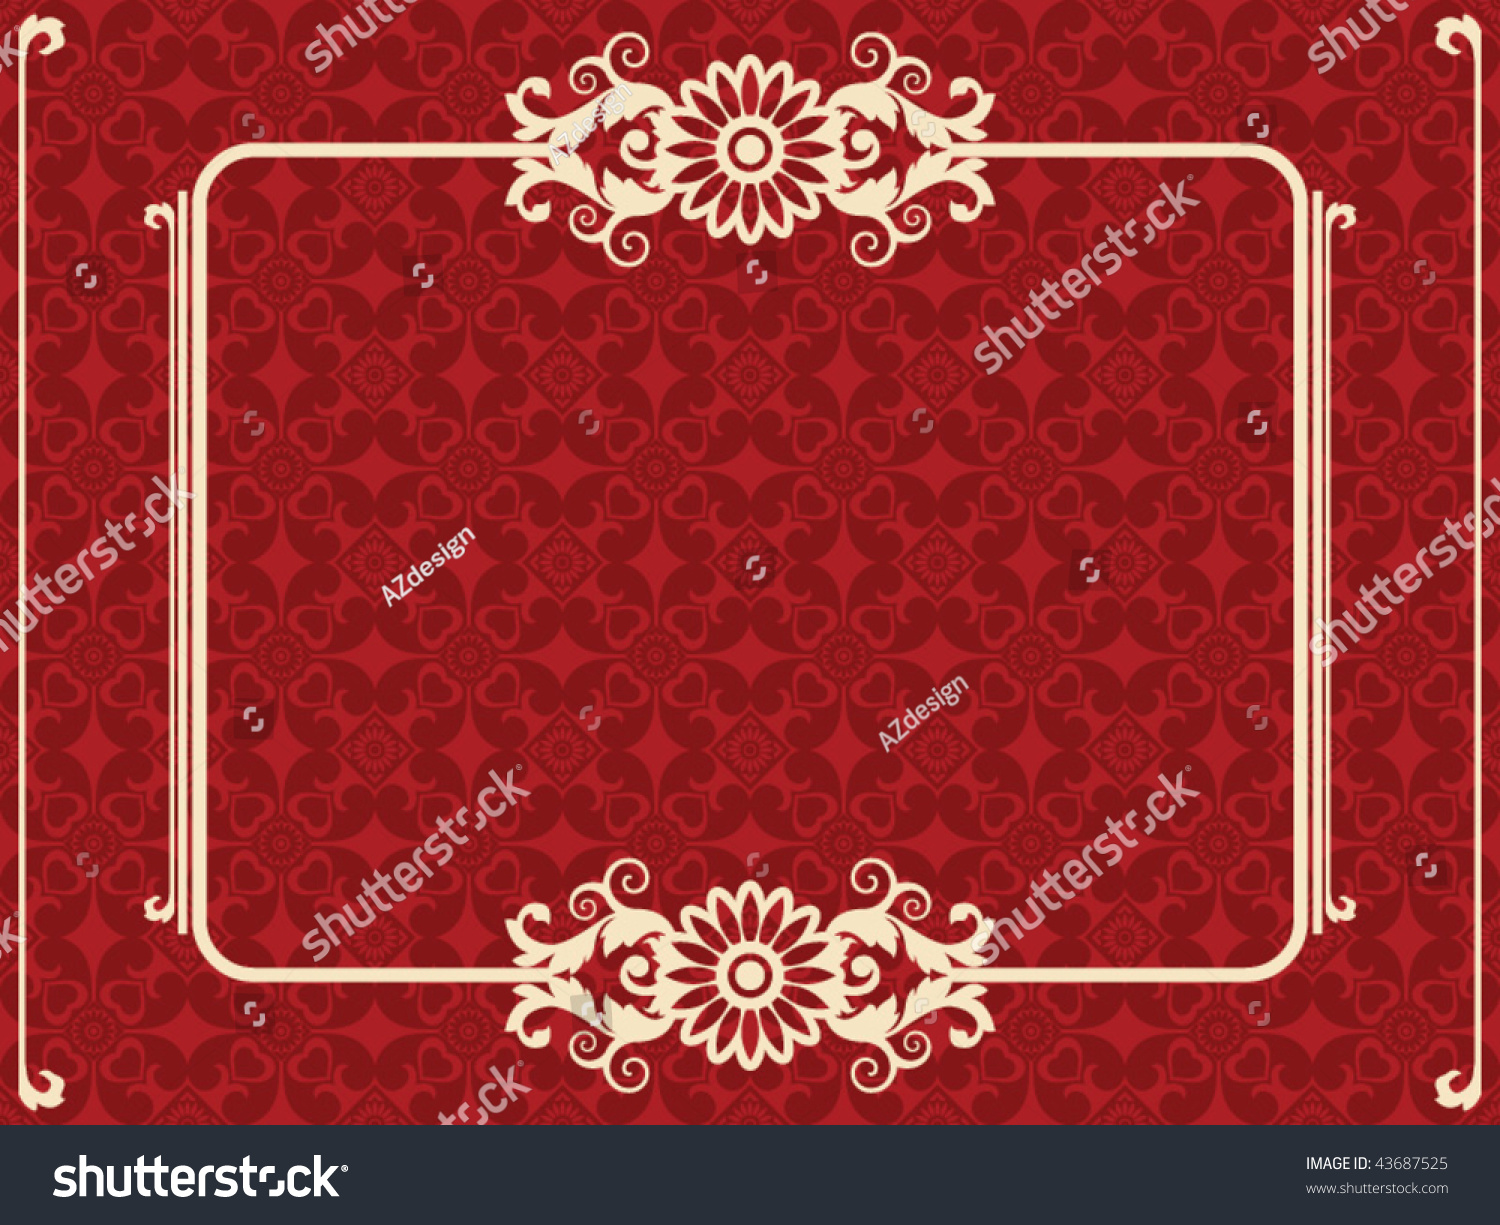 Baroque design elements vector illustration 43687525 for Baroque design elements